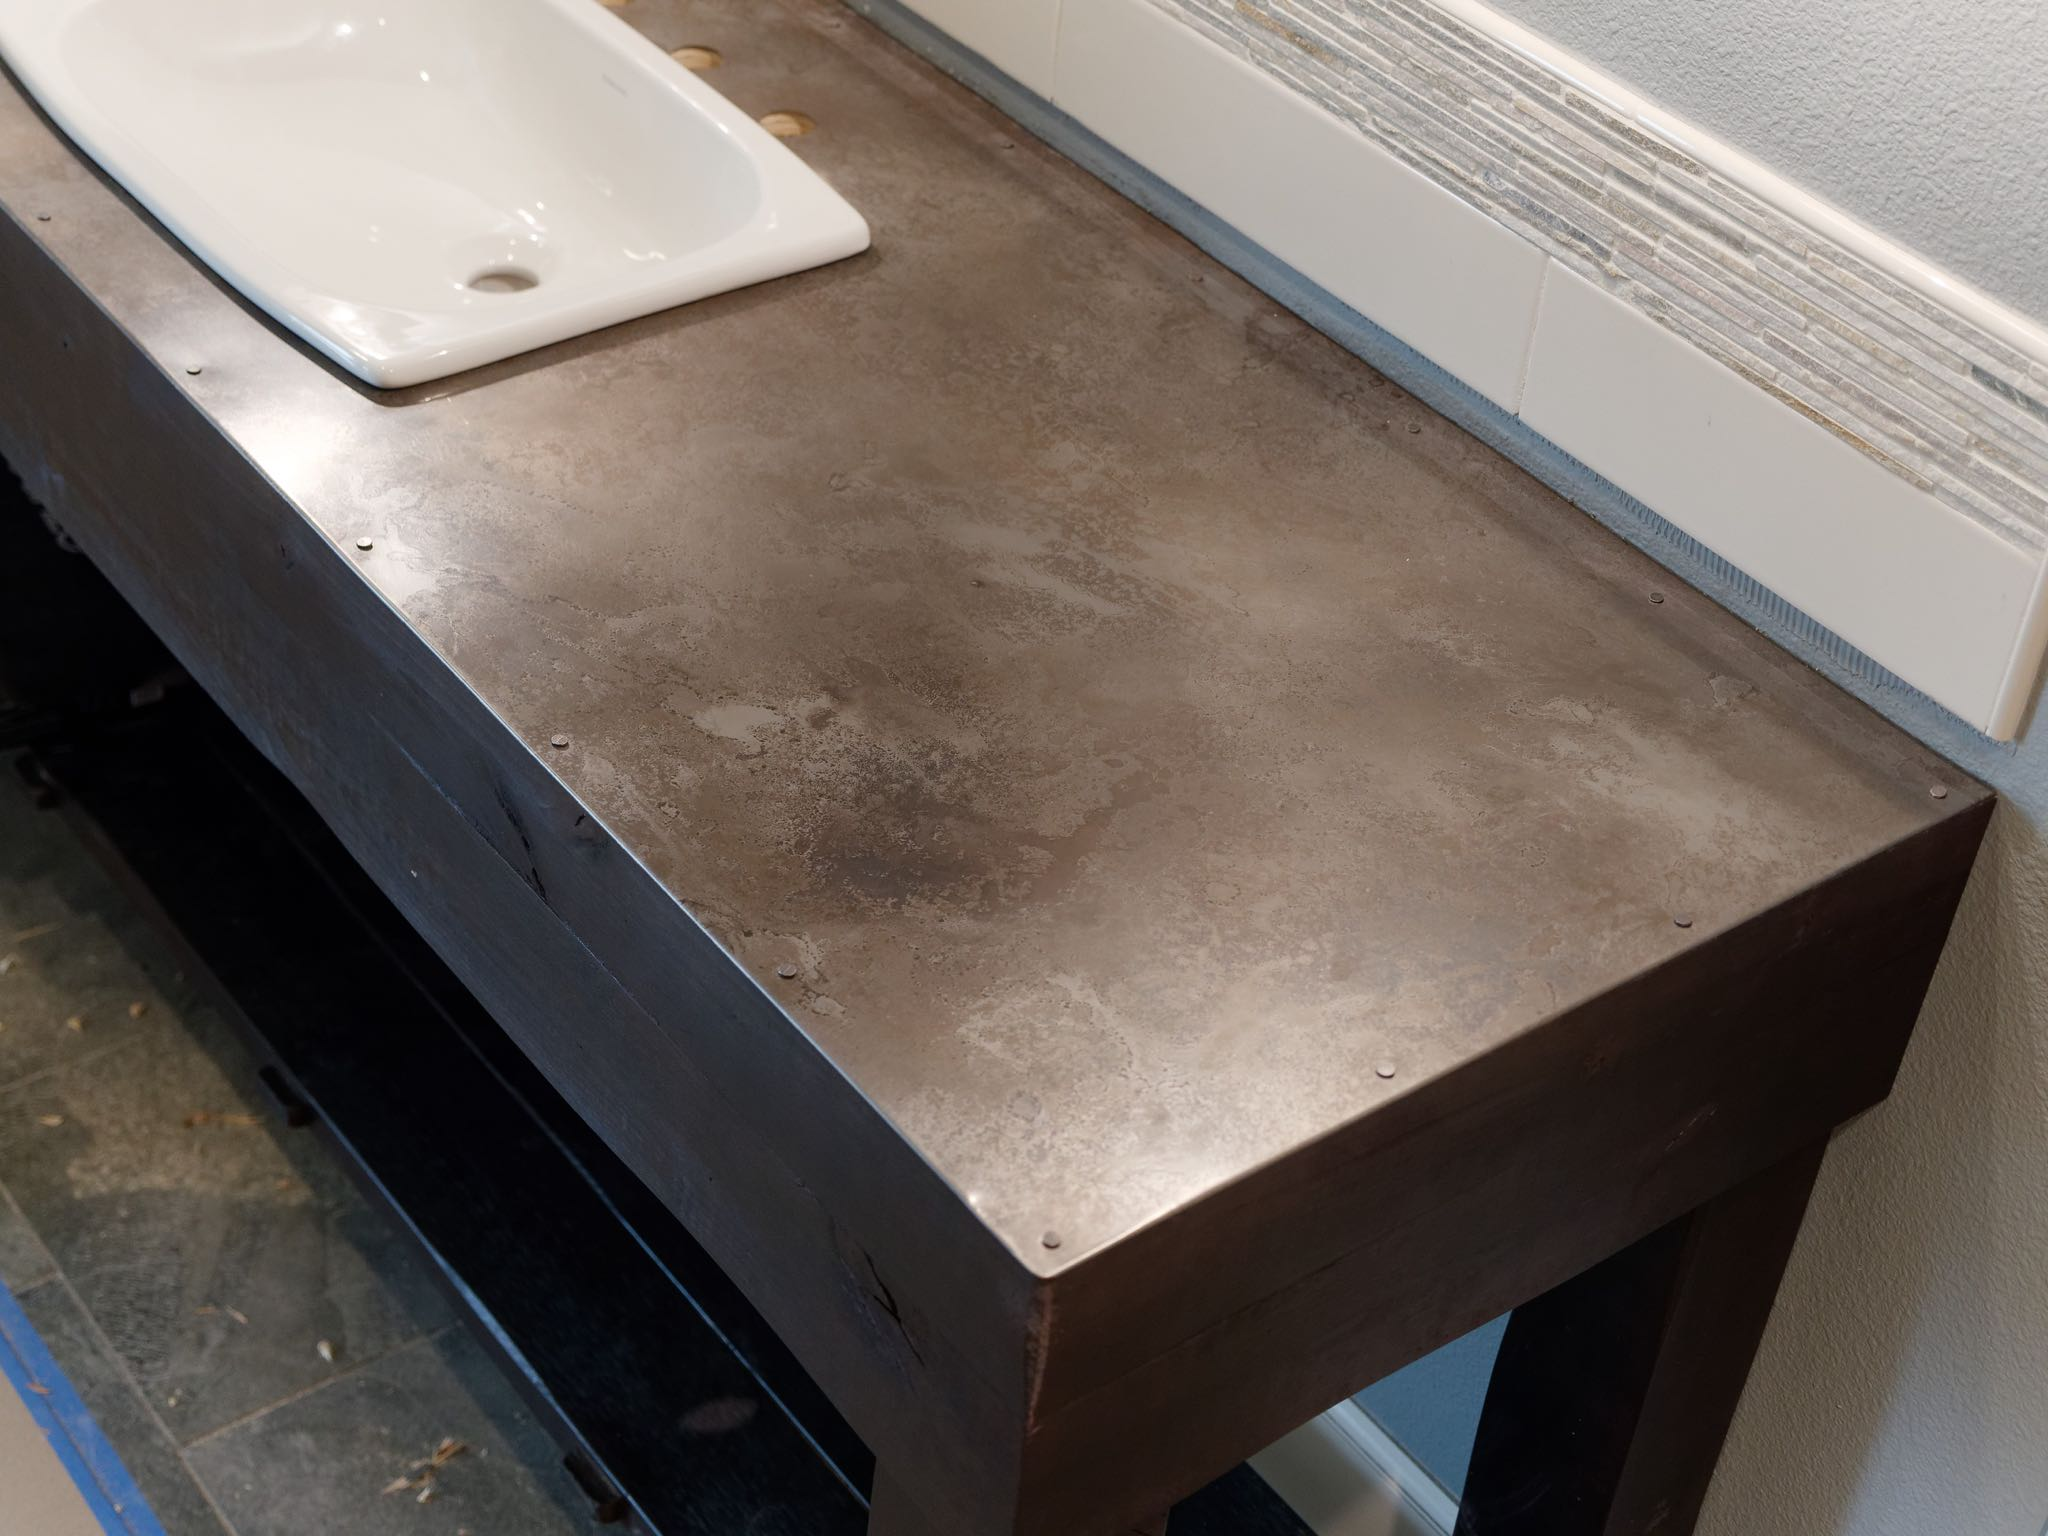 Stainless Countertop Volcanic Stainless Countertops Milo S Art Metal